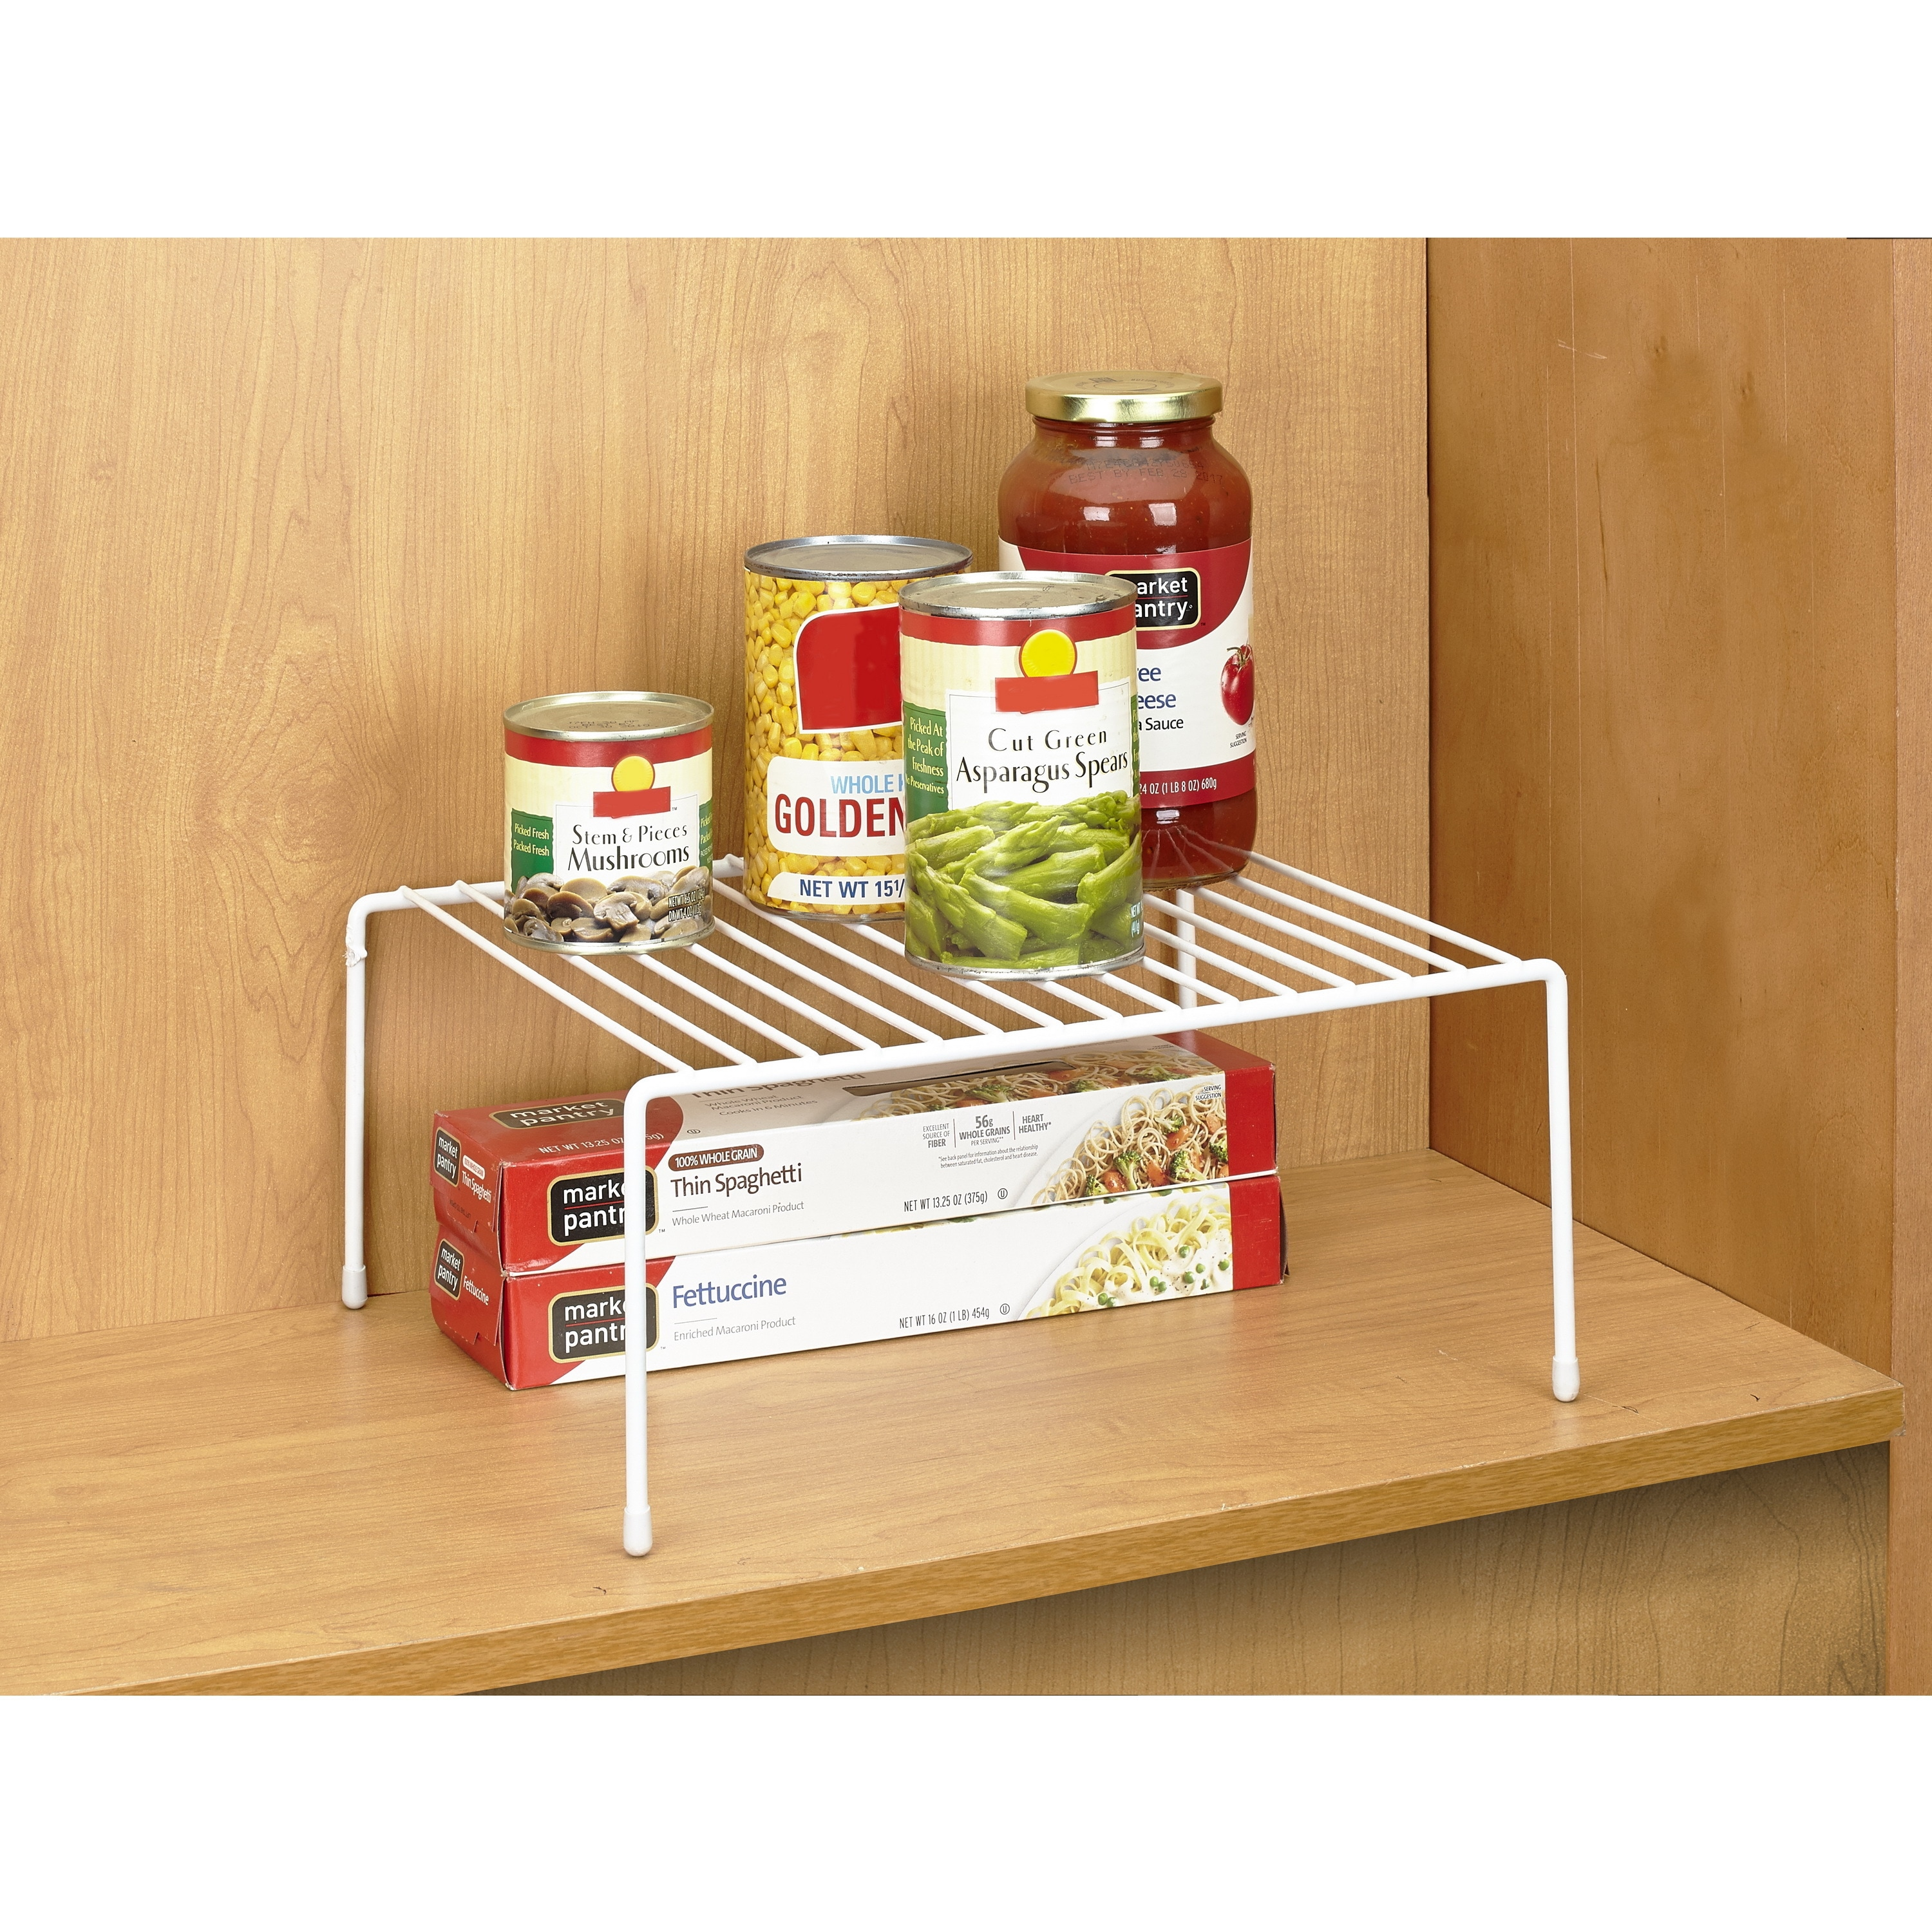 Simply kitchen details medium white iron kitchen shelf organizer free shipping on orders over 45 overstock com 20690305